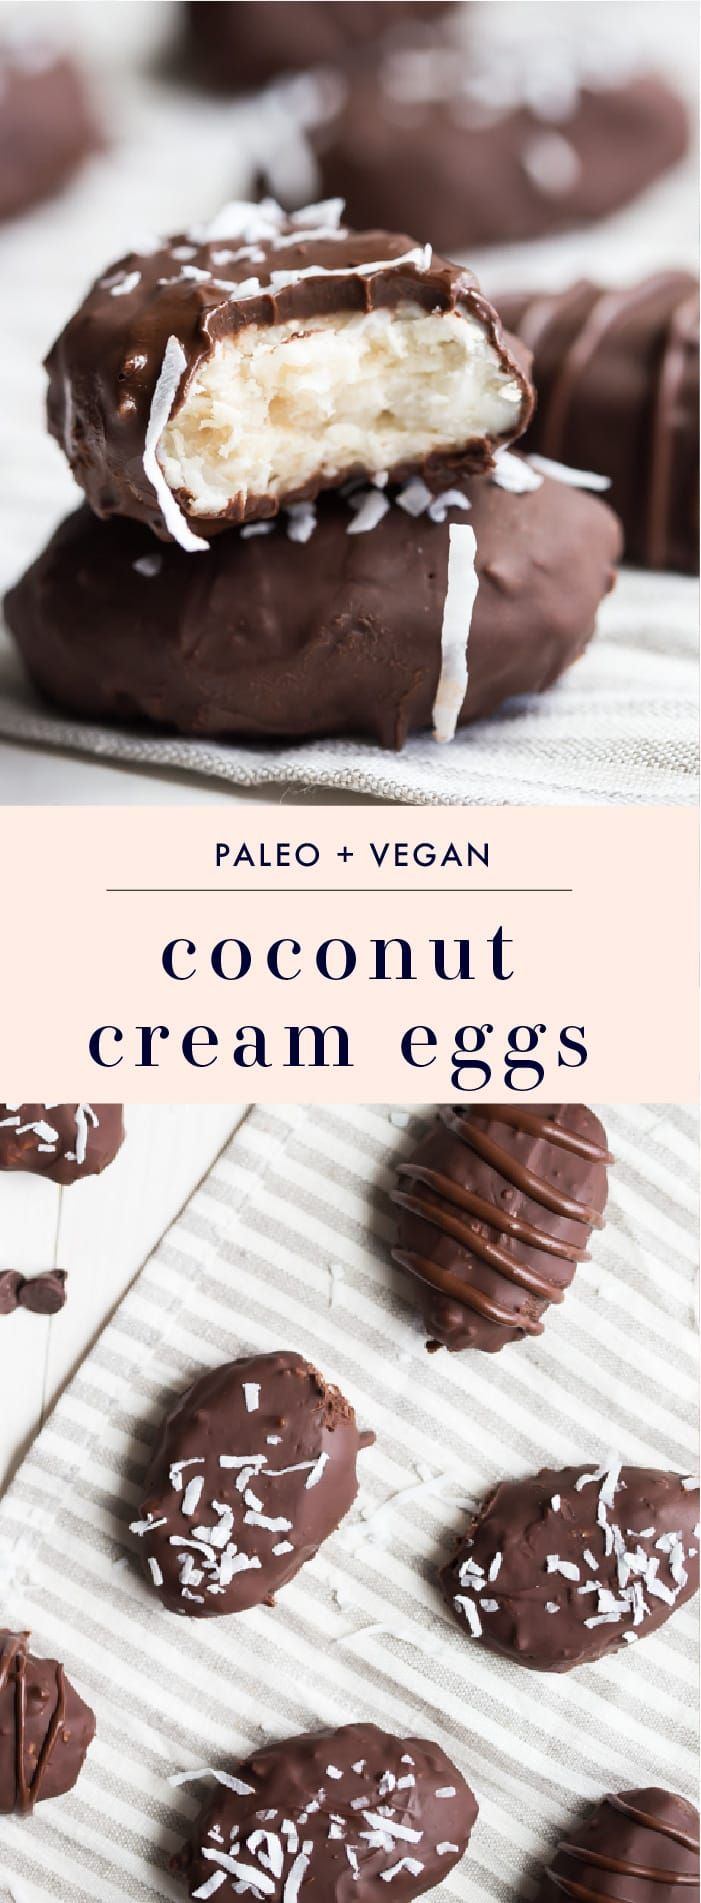 These paleo coconut cream eggs are the perfect paleo Easter treats. Rich and sweet, these vegan Easter eggs are made with only healthy ingredients. Easter is definitely better with paleo coconut cream eggs, right? You'll love these paleo Easter treats because they're simple but delicious!